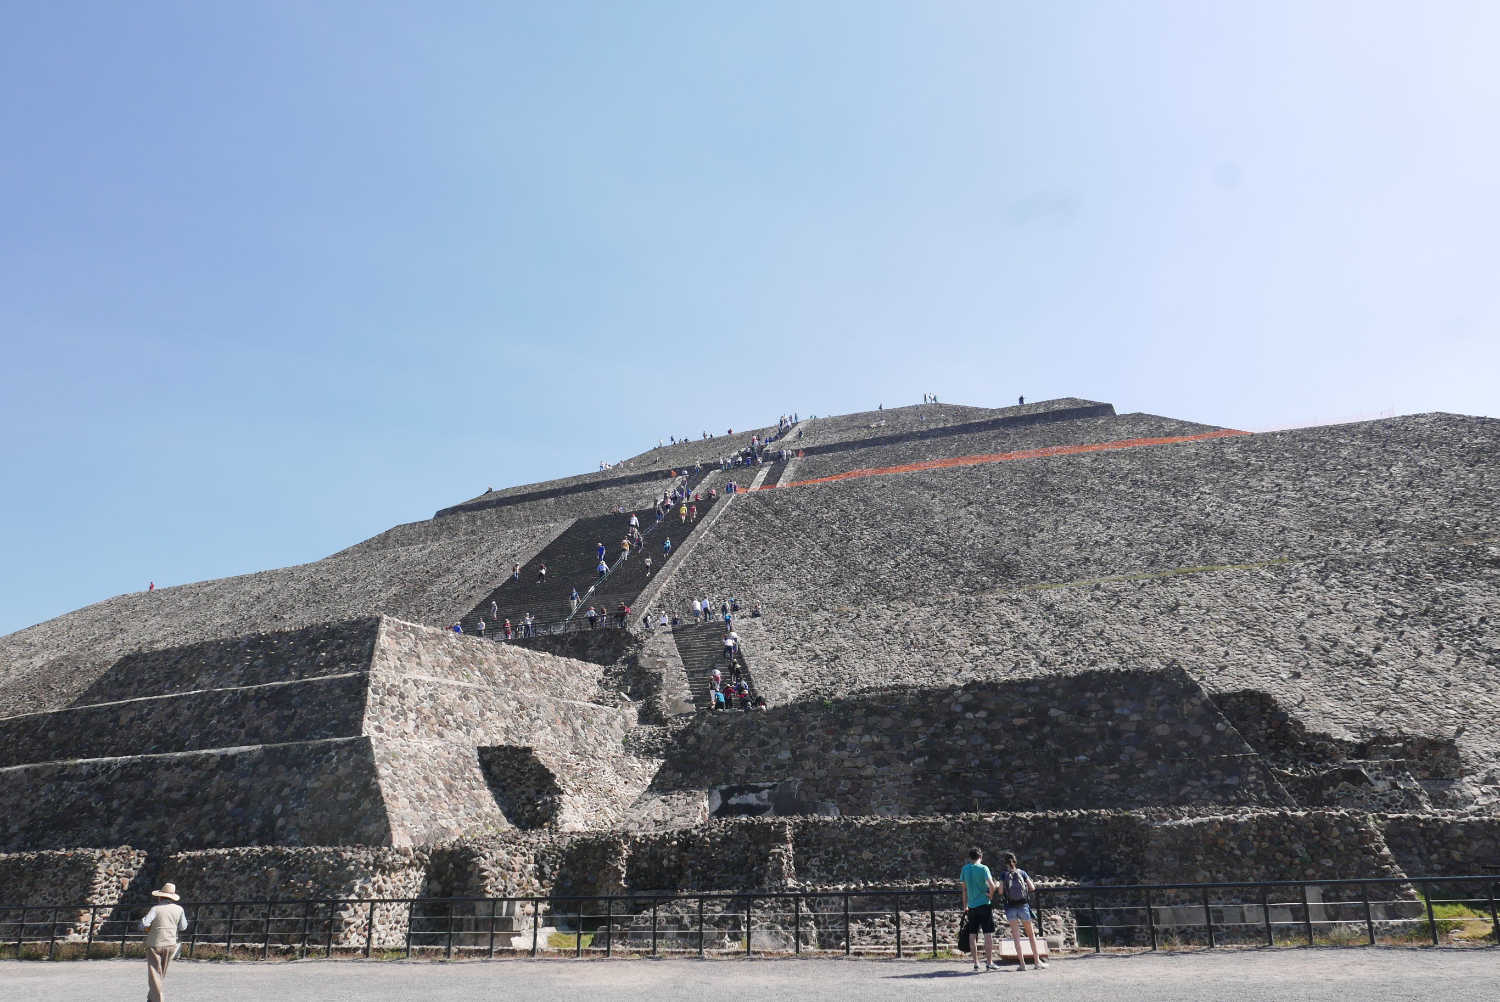 Closer look of Pyramid of the Sun in Teotihuacan